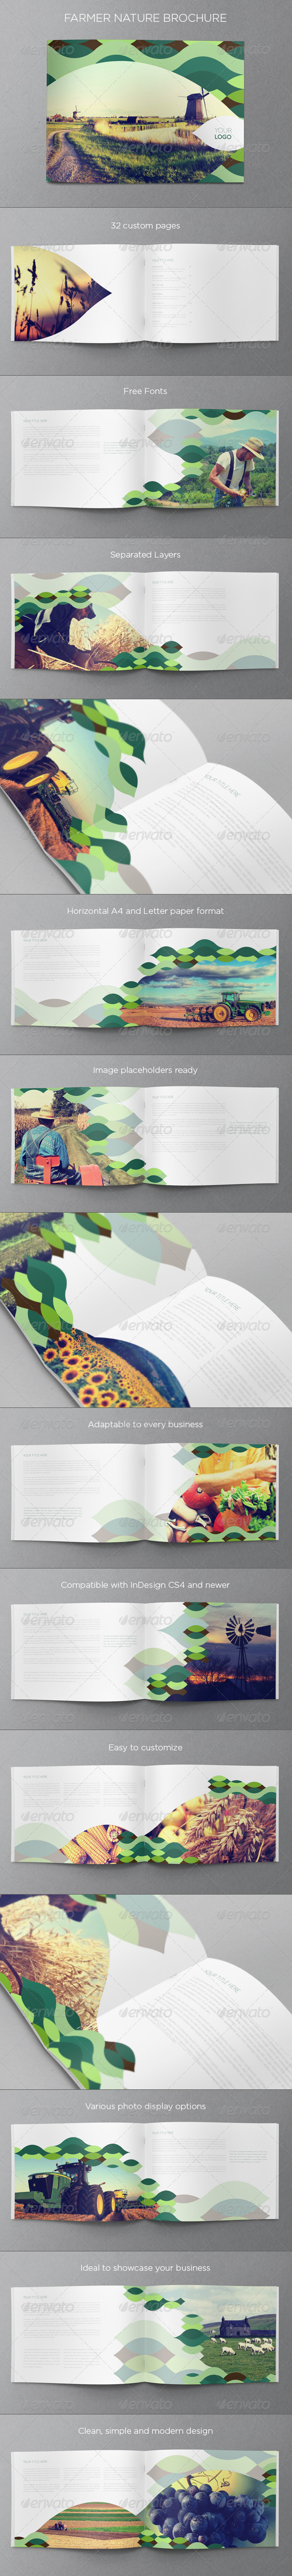 Green Nature Brochure - Brochures Print Templates